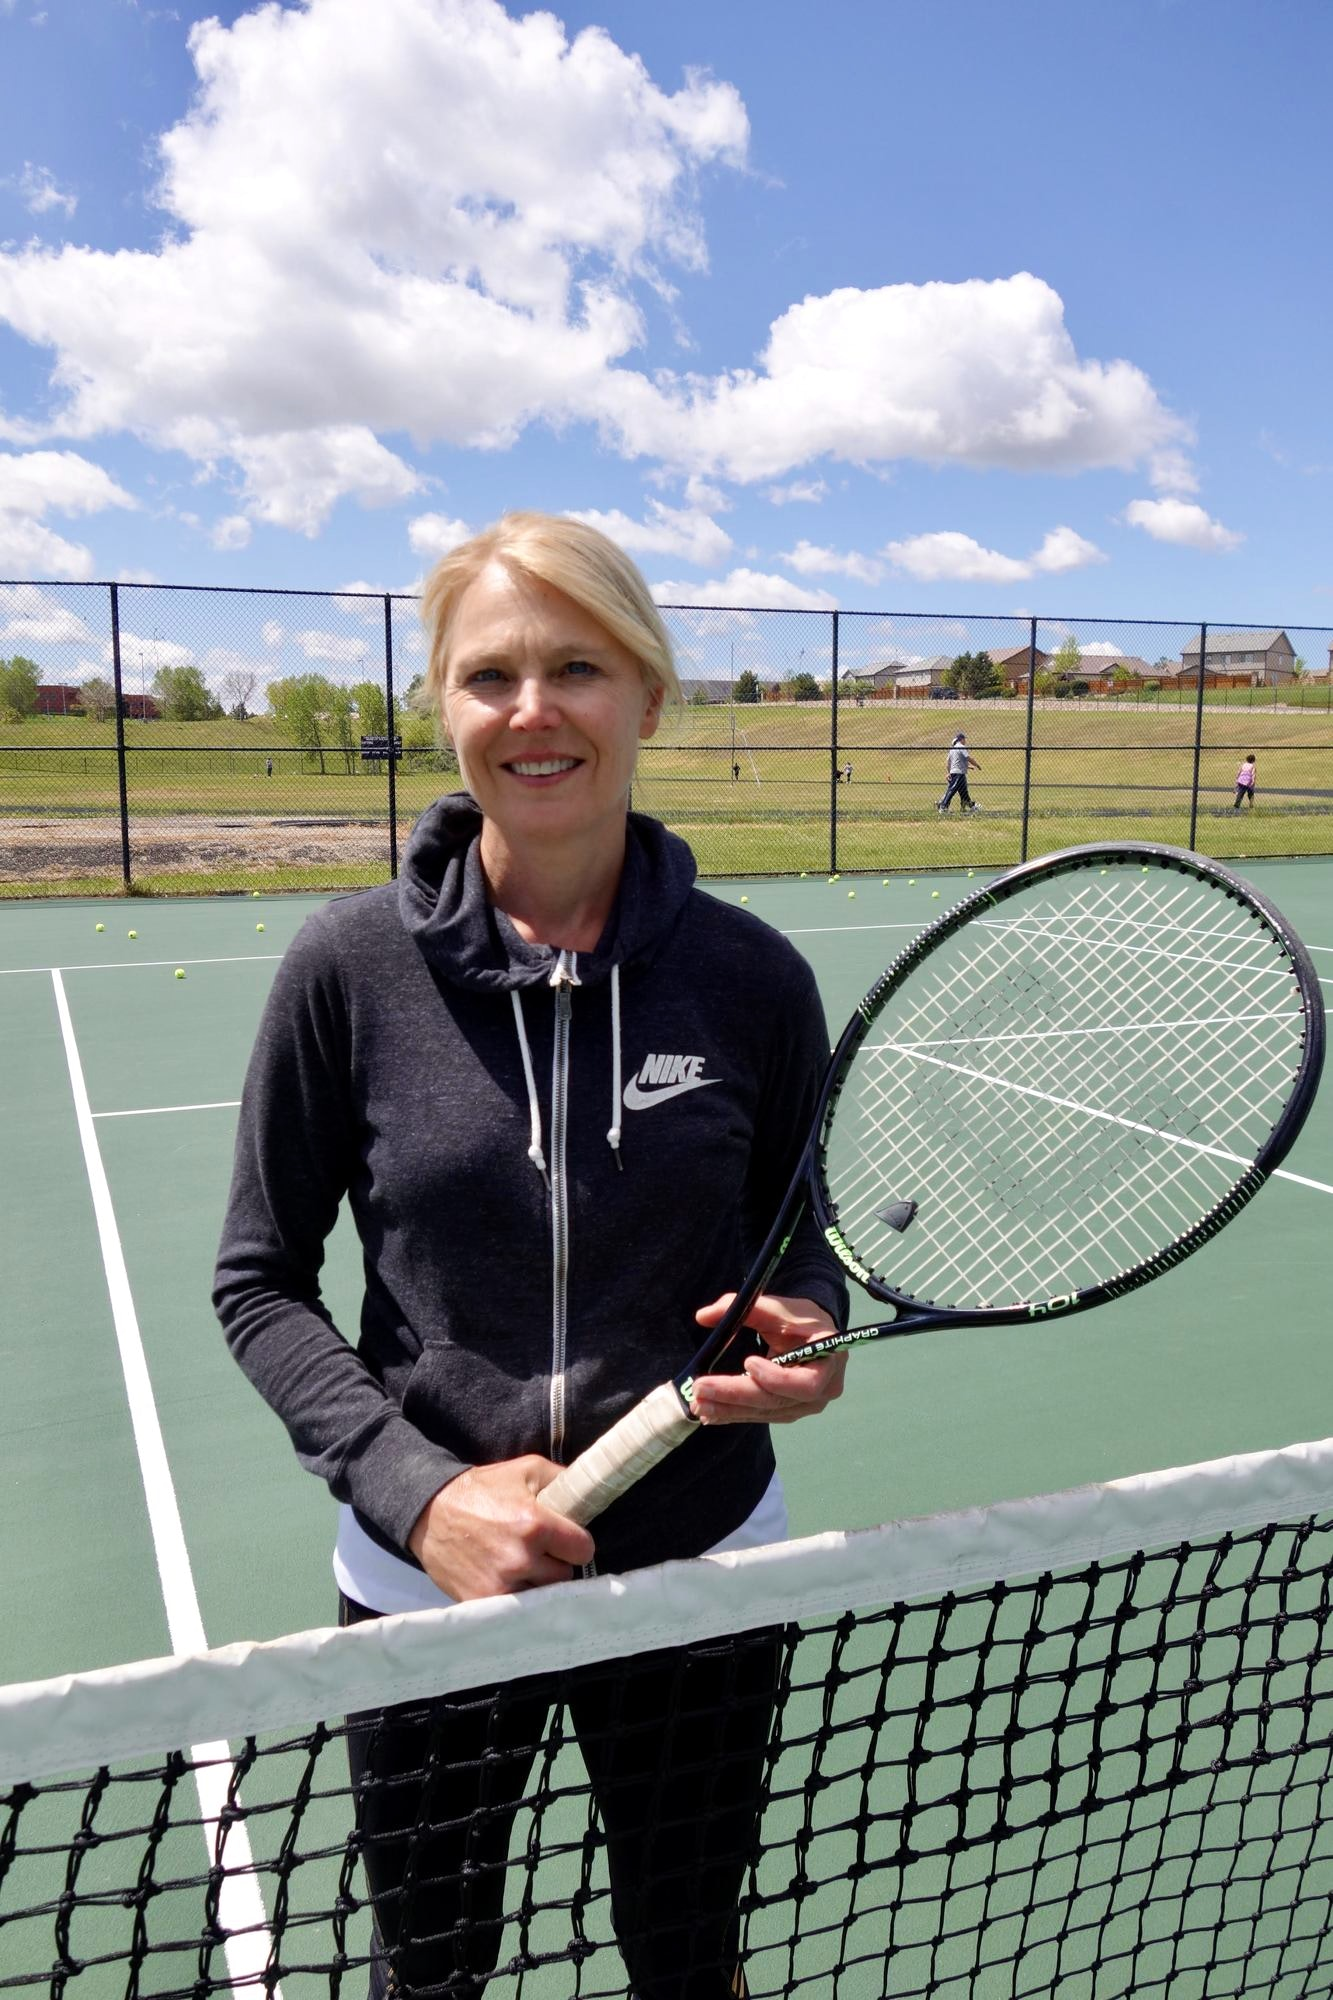 Stacey T. teaches tennis lessons in Aurora, CO